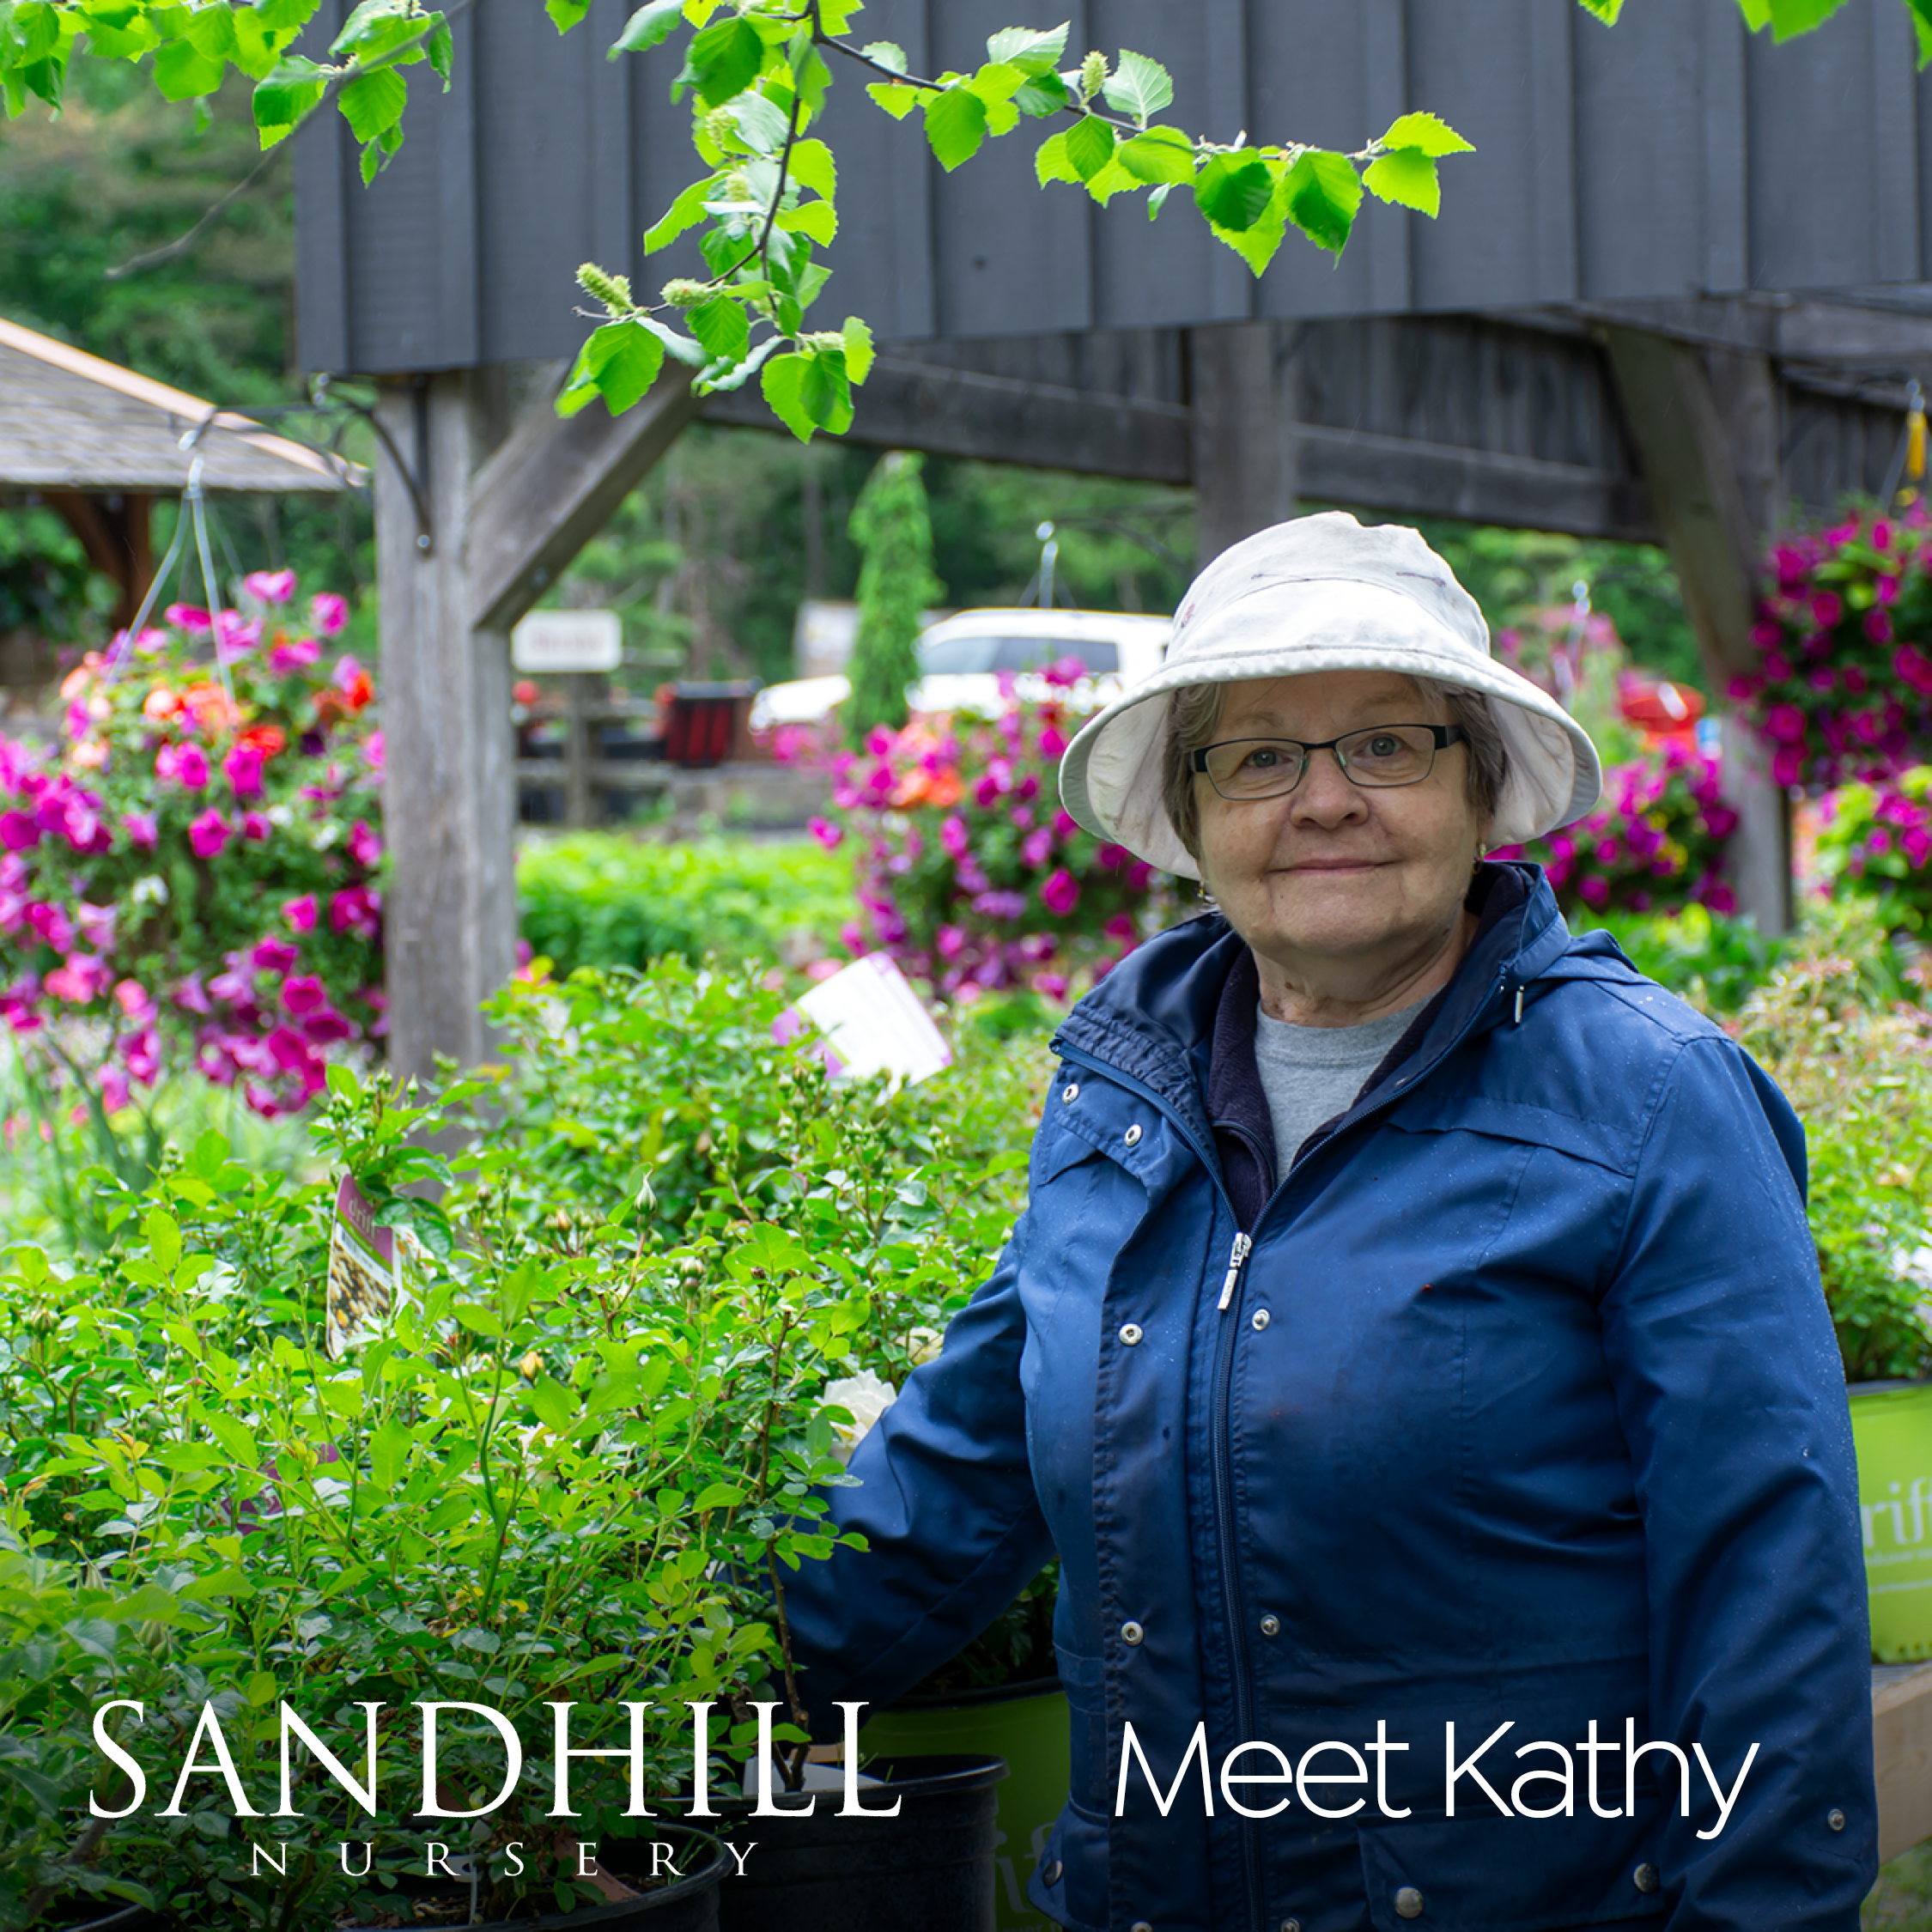 Perhaps this friendly face looks familiar? Kathy has been sharing her expertise with Sandhill clients for 30 years. There isn't a gardening riddle she can't solve!